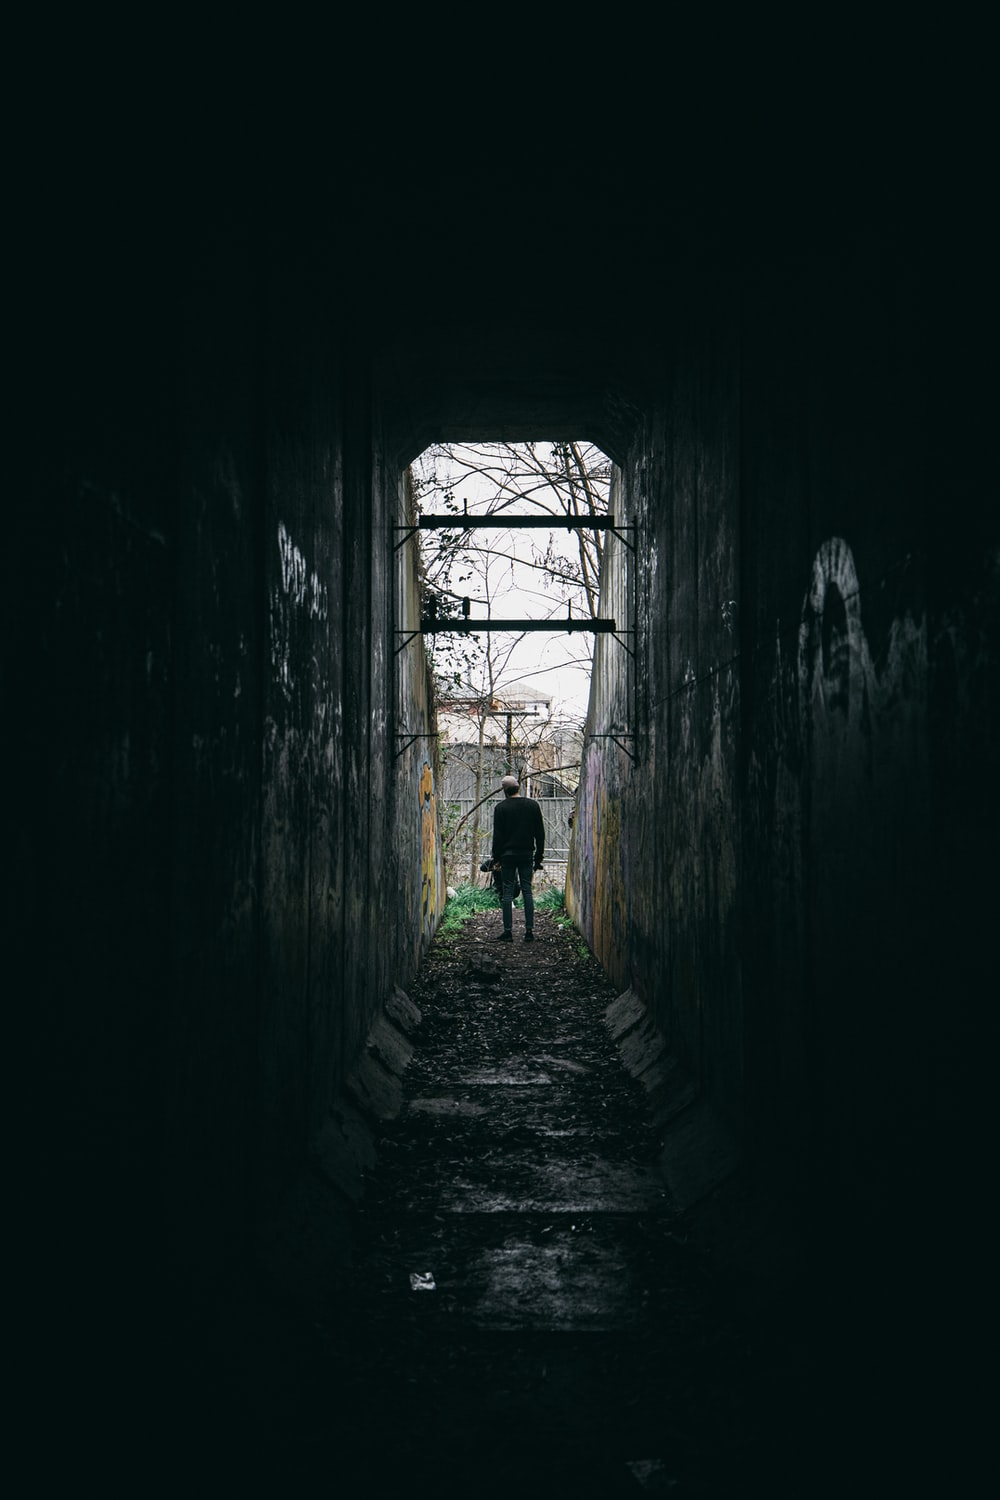 person in green shirt walking on tunnel